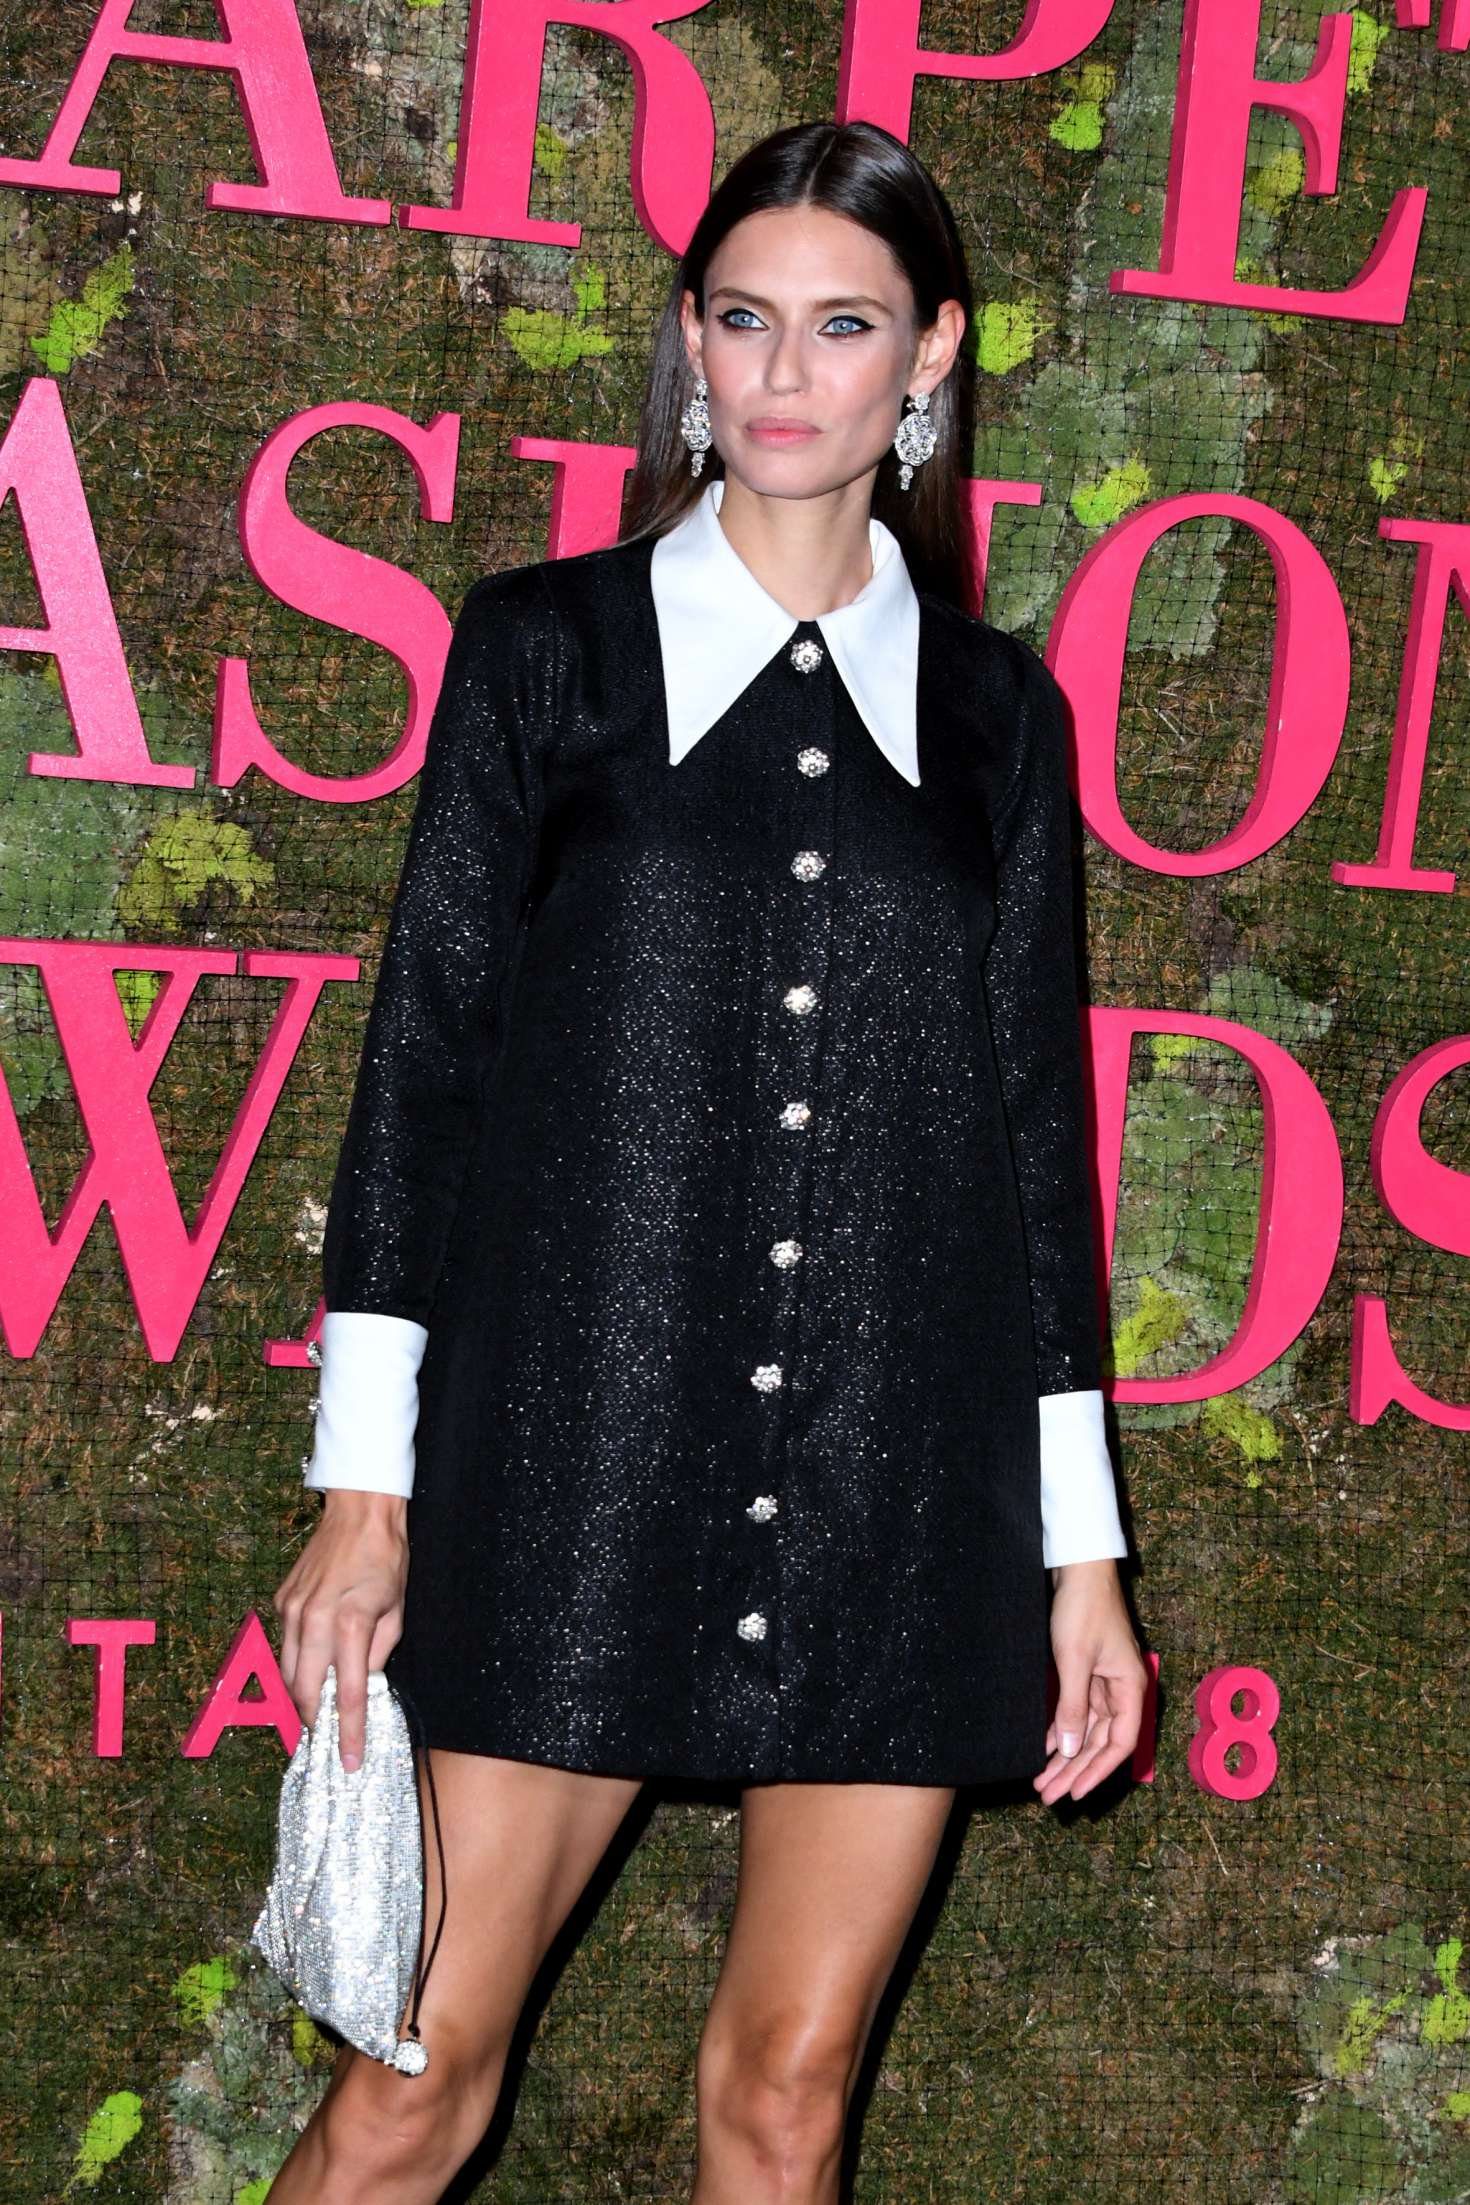 Bianca Balti - Green Carpet Fashion Awards 2018 in Milan